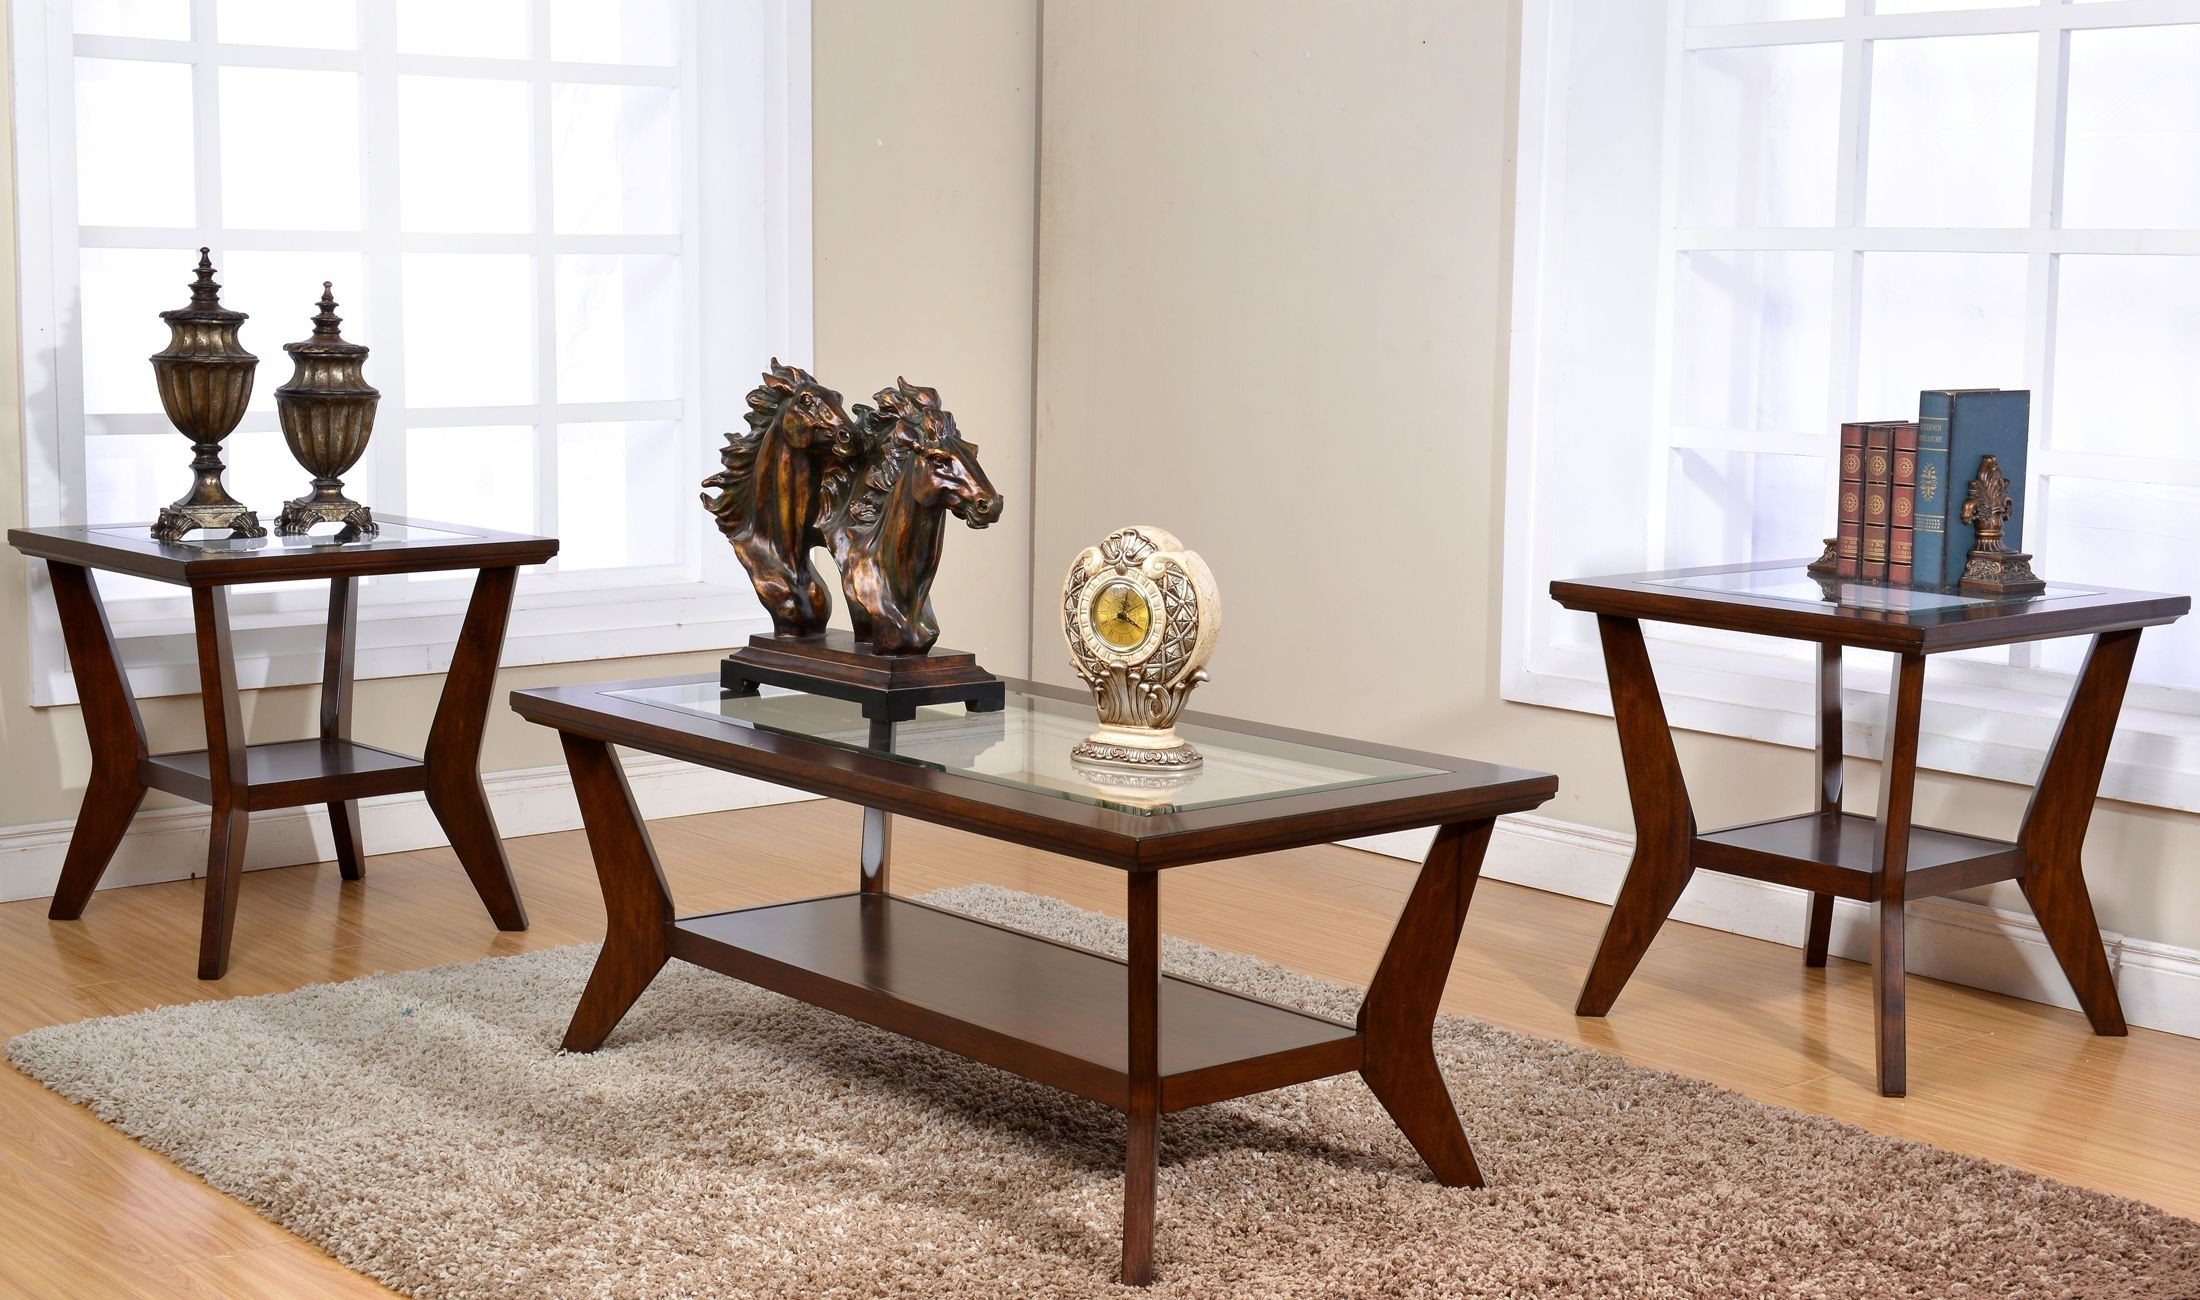 Bryant Sable 3 Piece Occasional Table Set & Bryant Sable 3 Piece Occasional Table Set from New Classic   Coleman ...